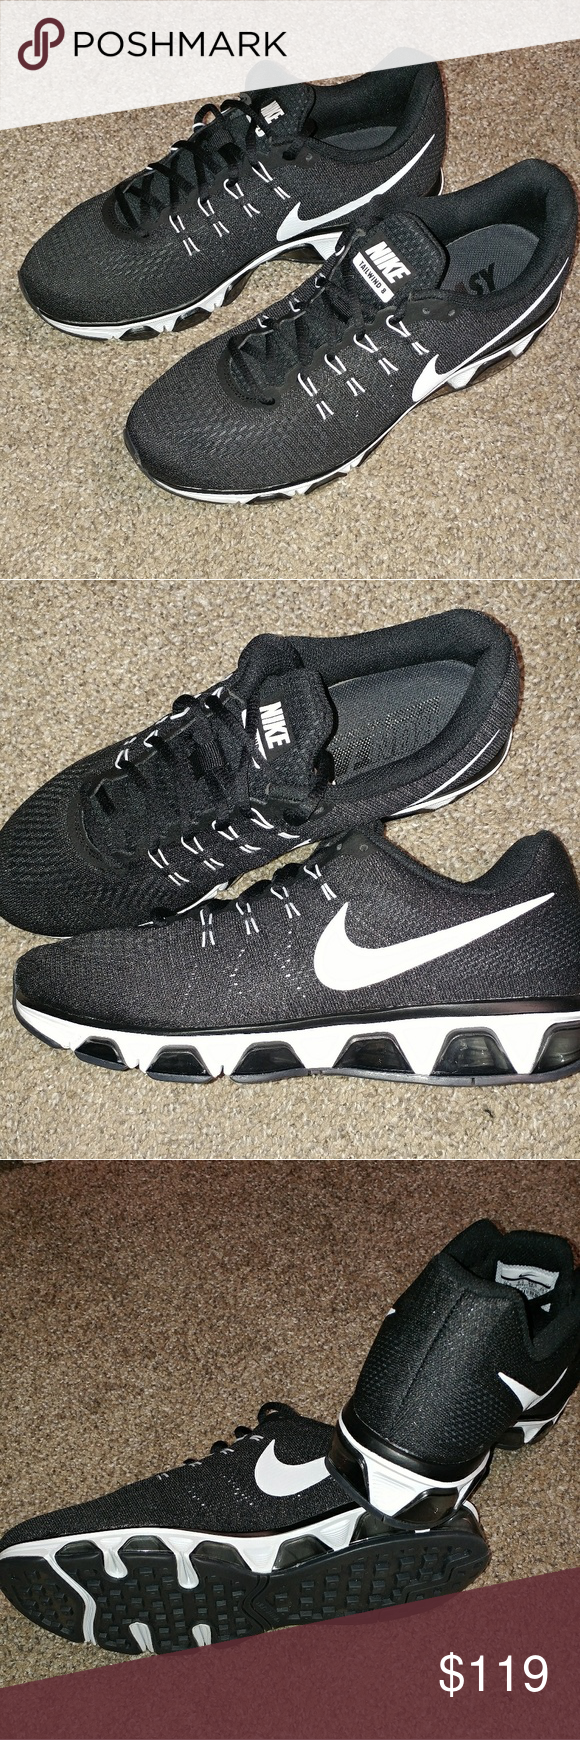 MENS 10.5 NIKE AIR MAX TAILWIND 8 RUNNING SHOES BRAND NEW WITH BOX (NO TOP